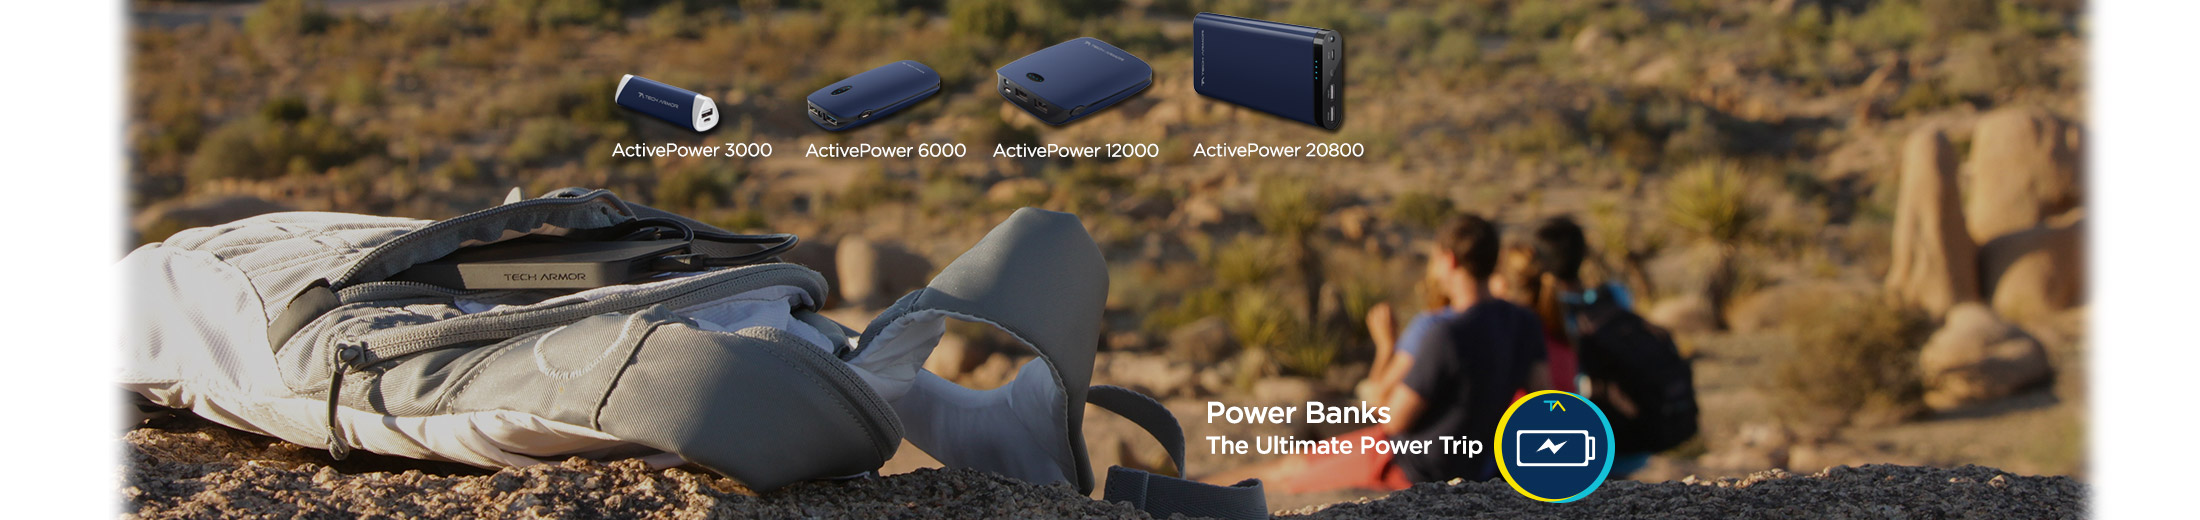 Tech Armor Powerbanks